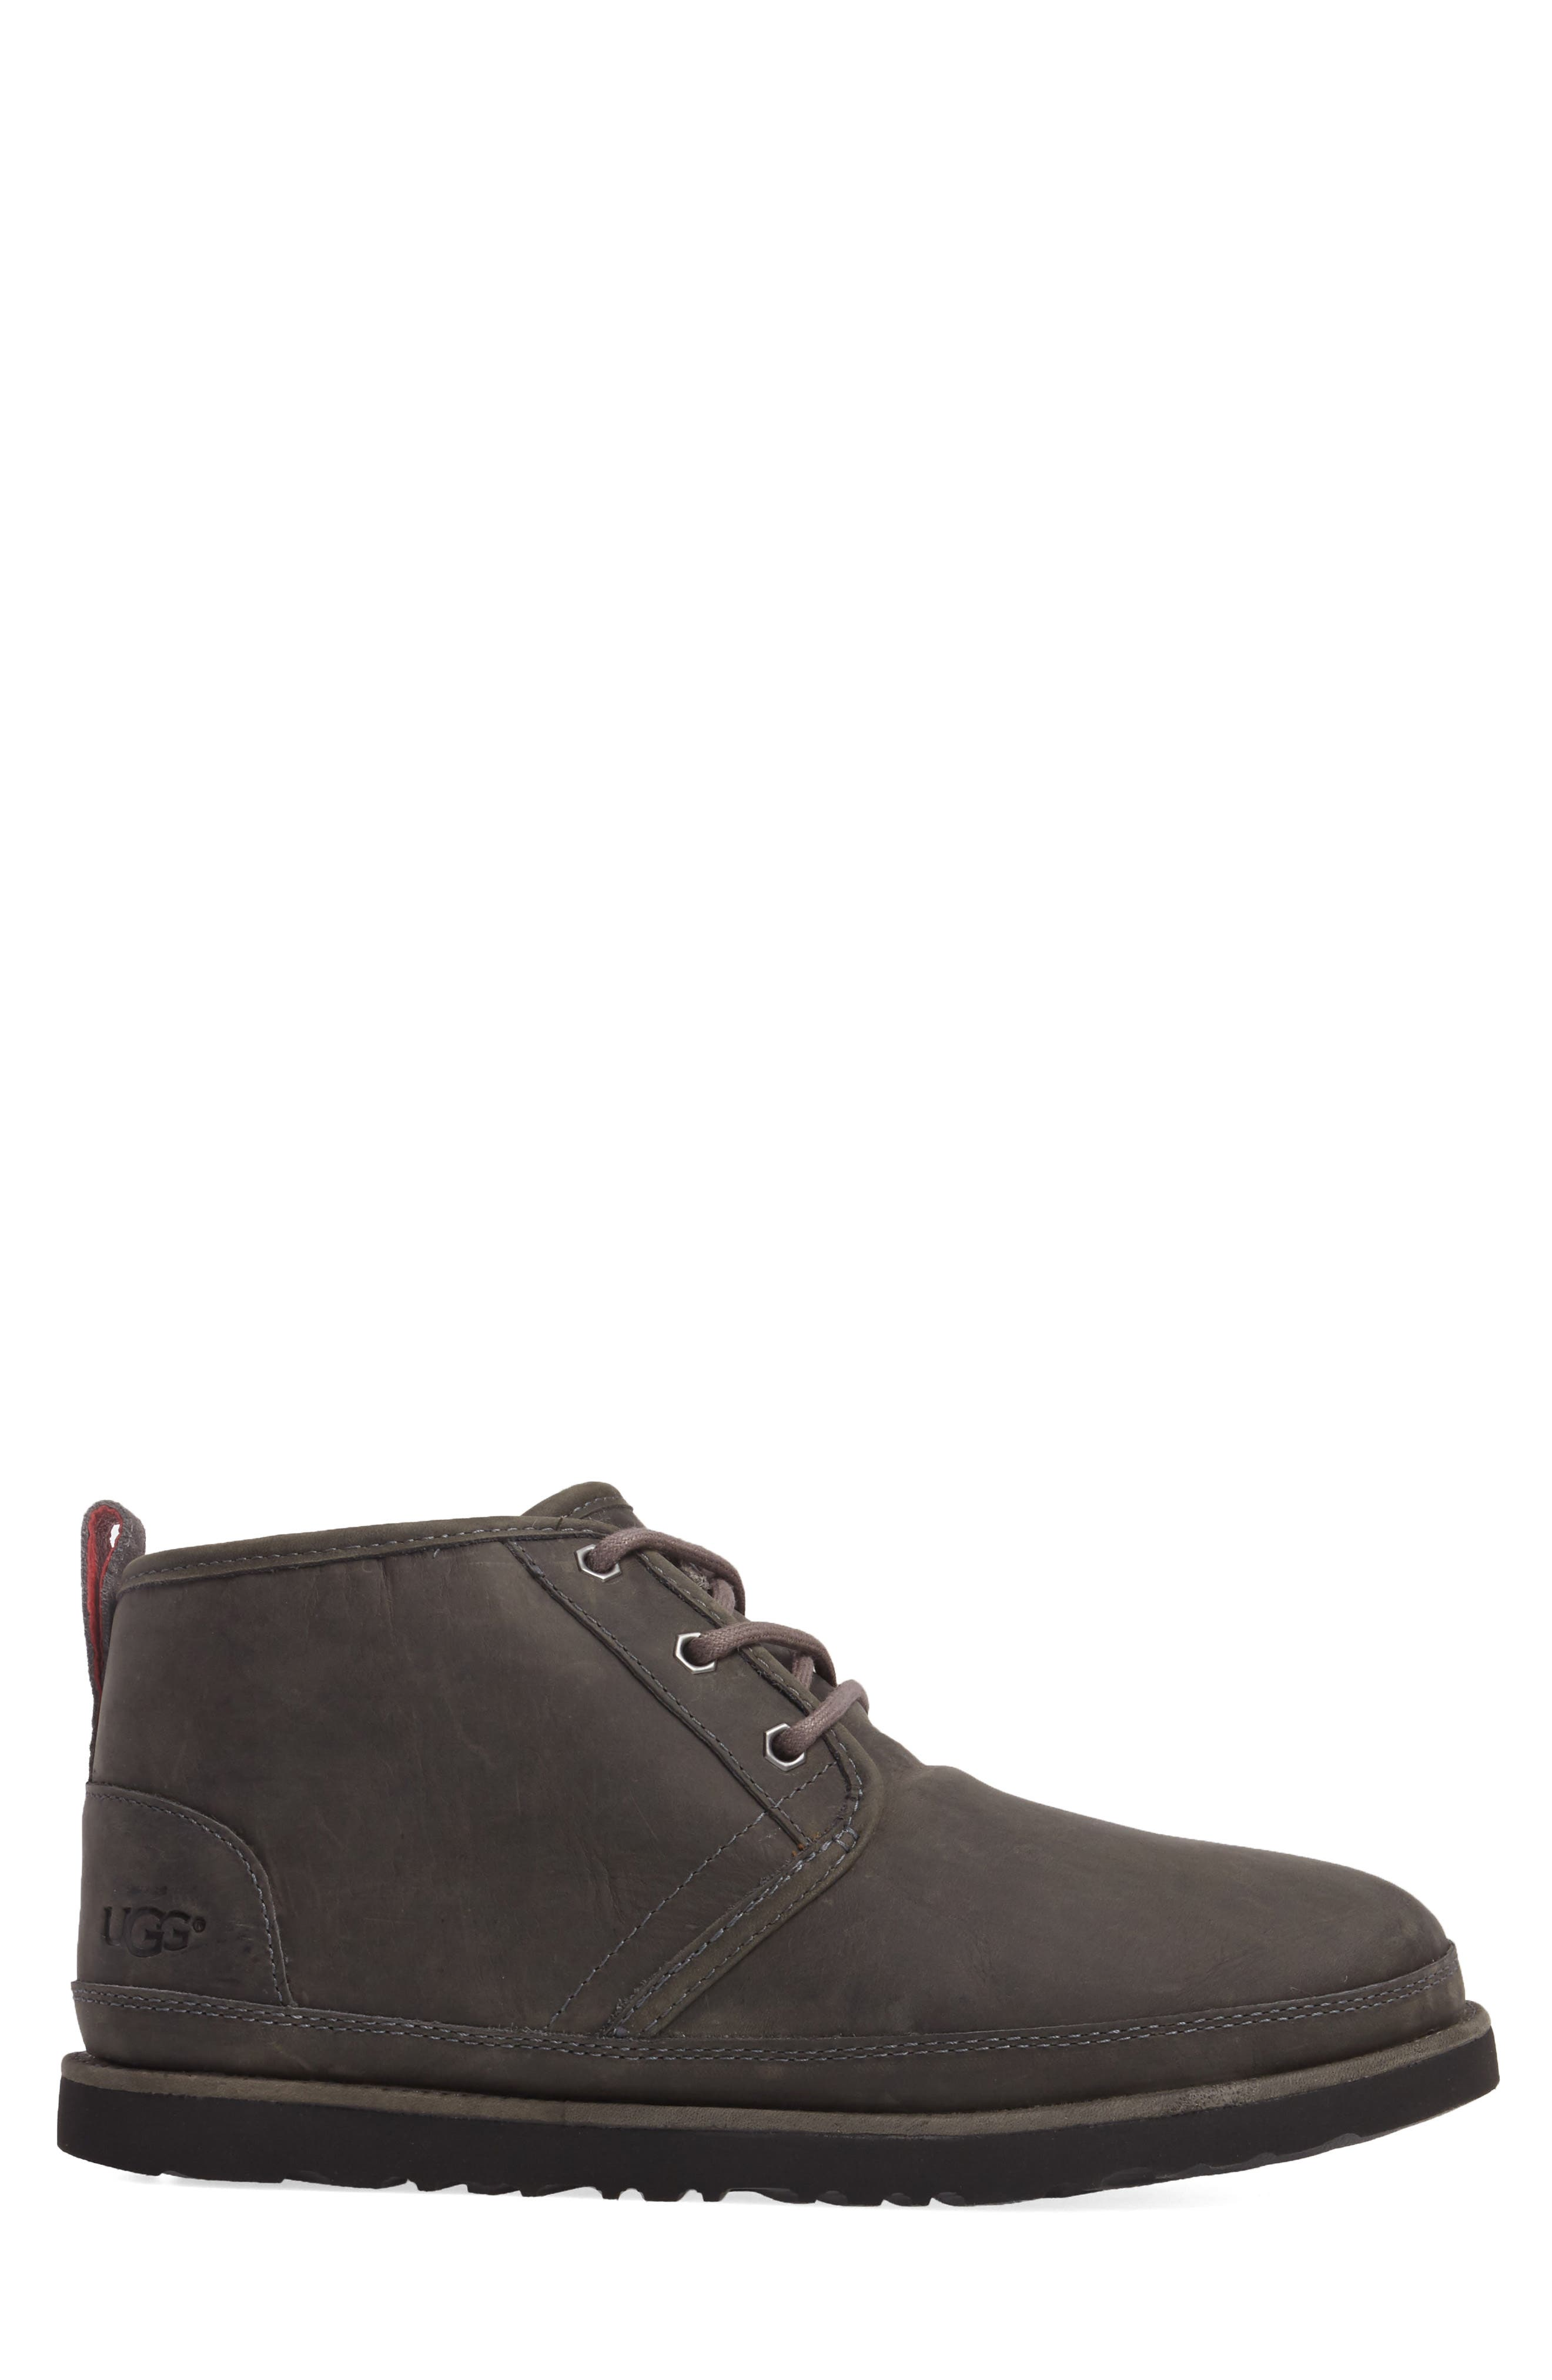 Neumel Waterproof Chukka Boot,                             Alternate thumbnail 3, color,                             Charcoal